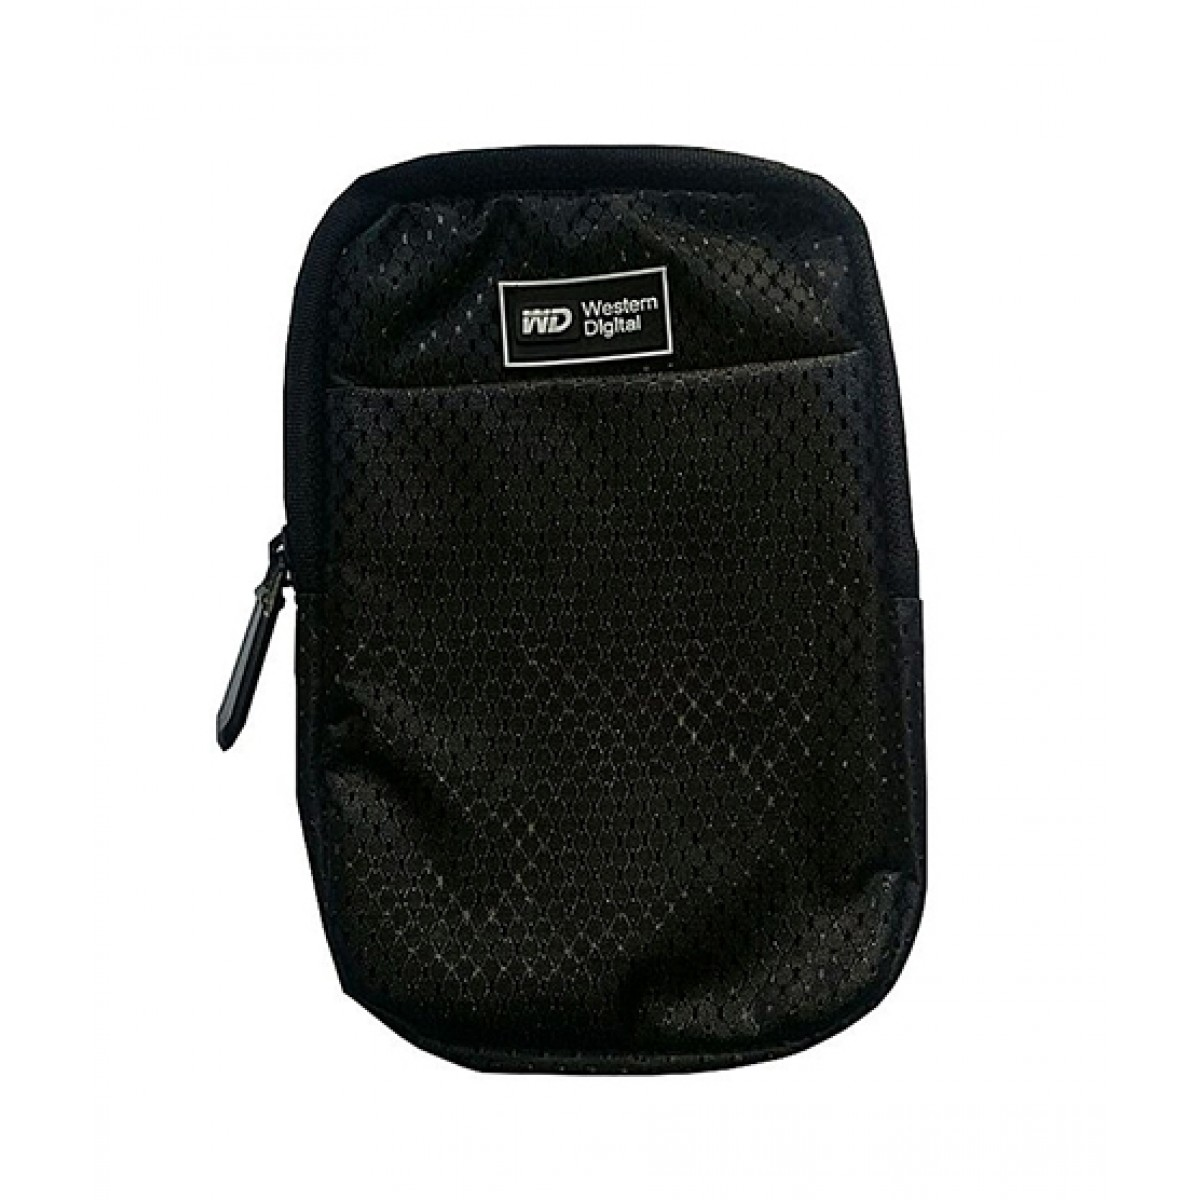 WD External Soft Hard Drive Case For Protection - Black